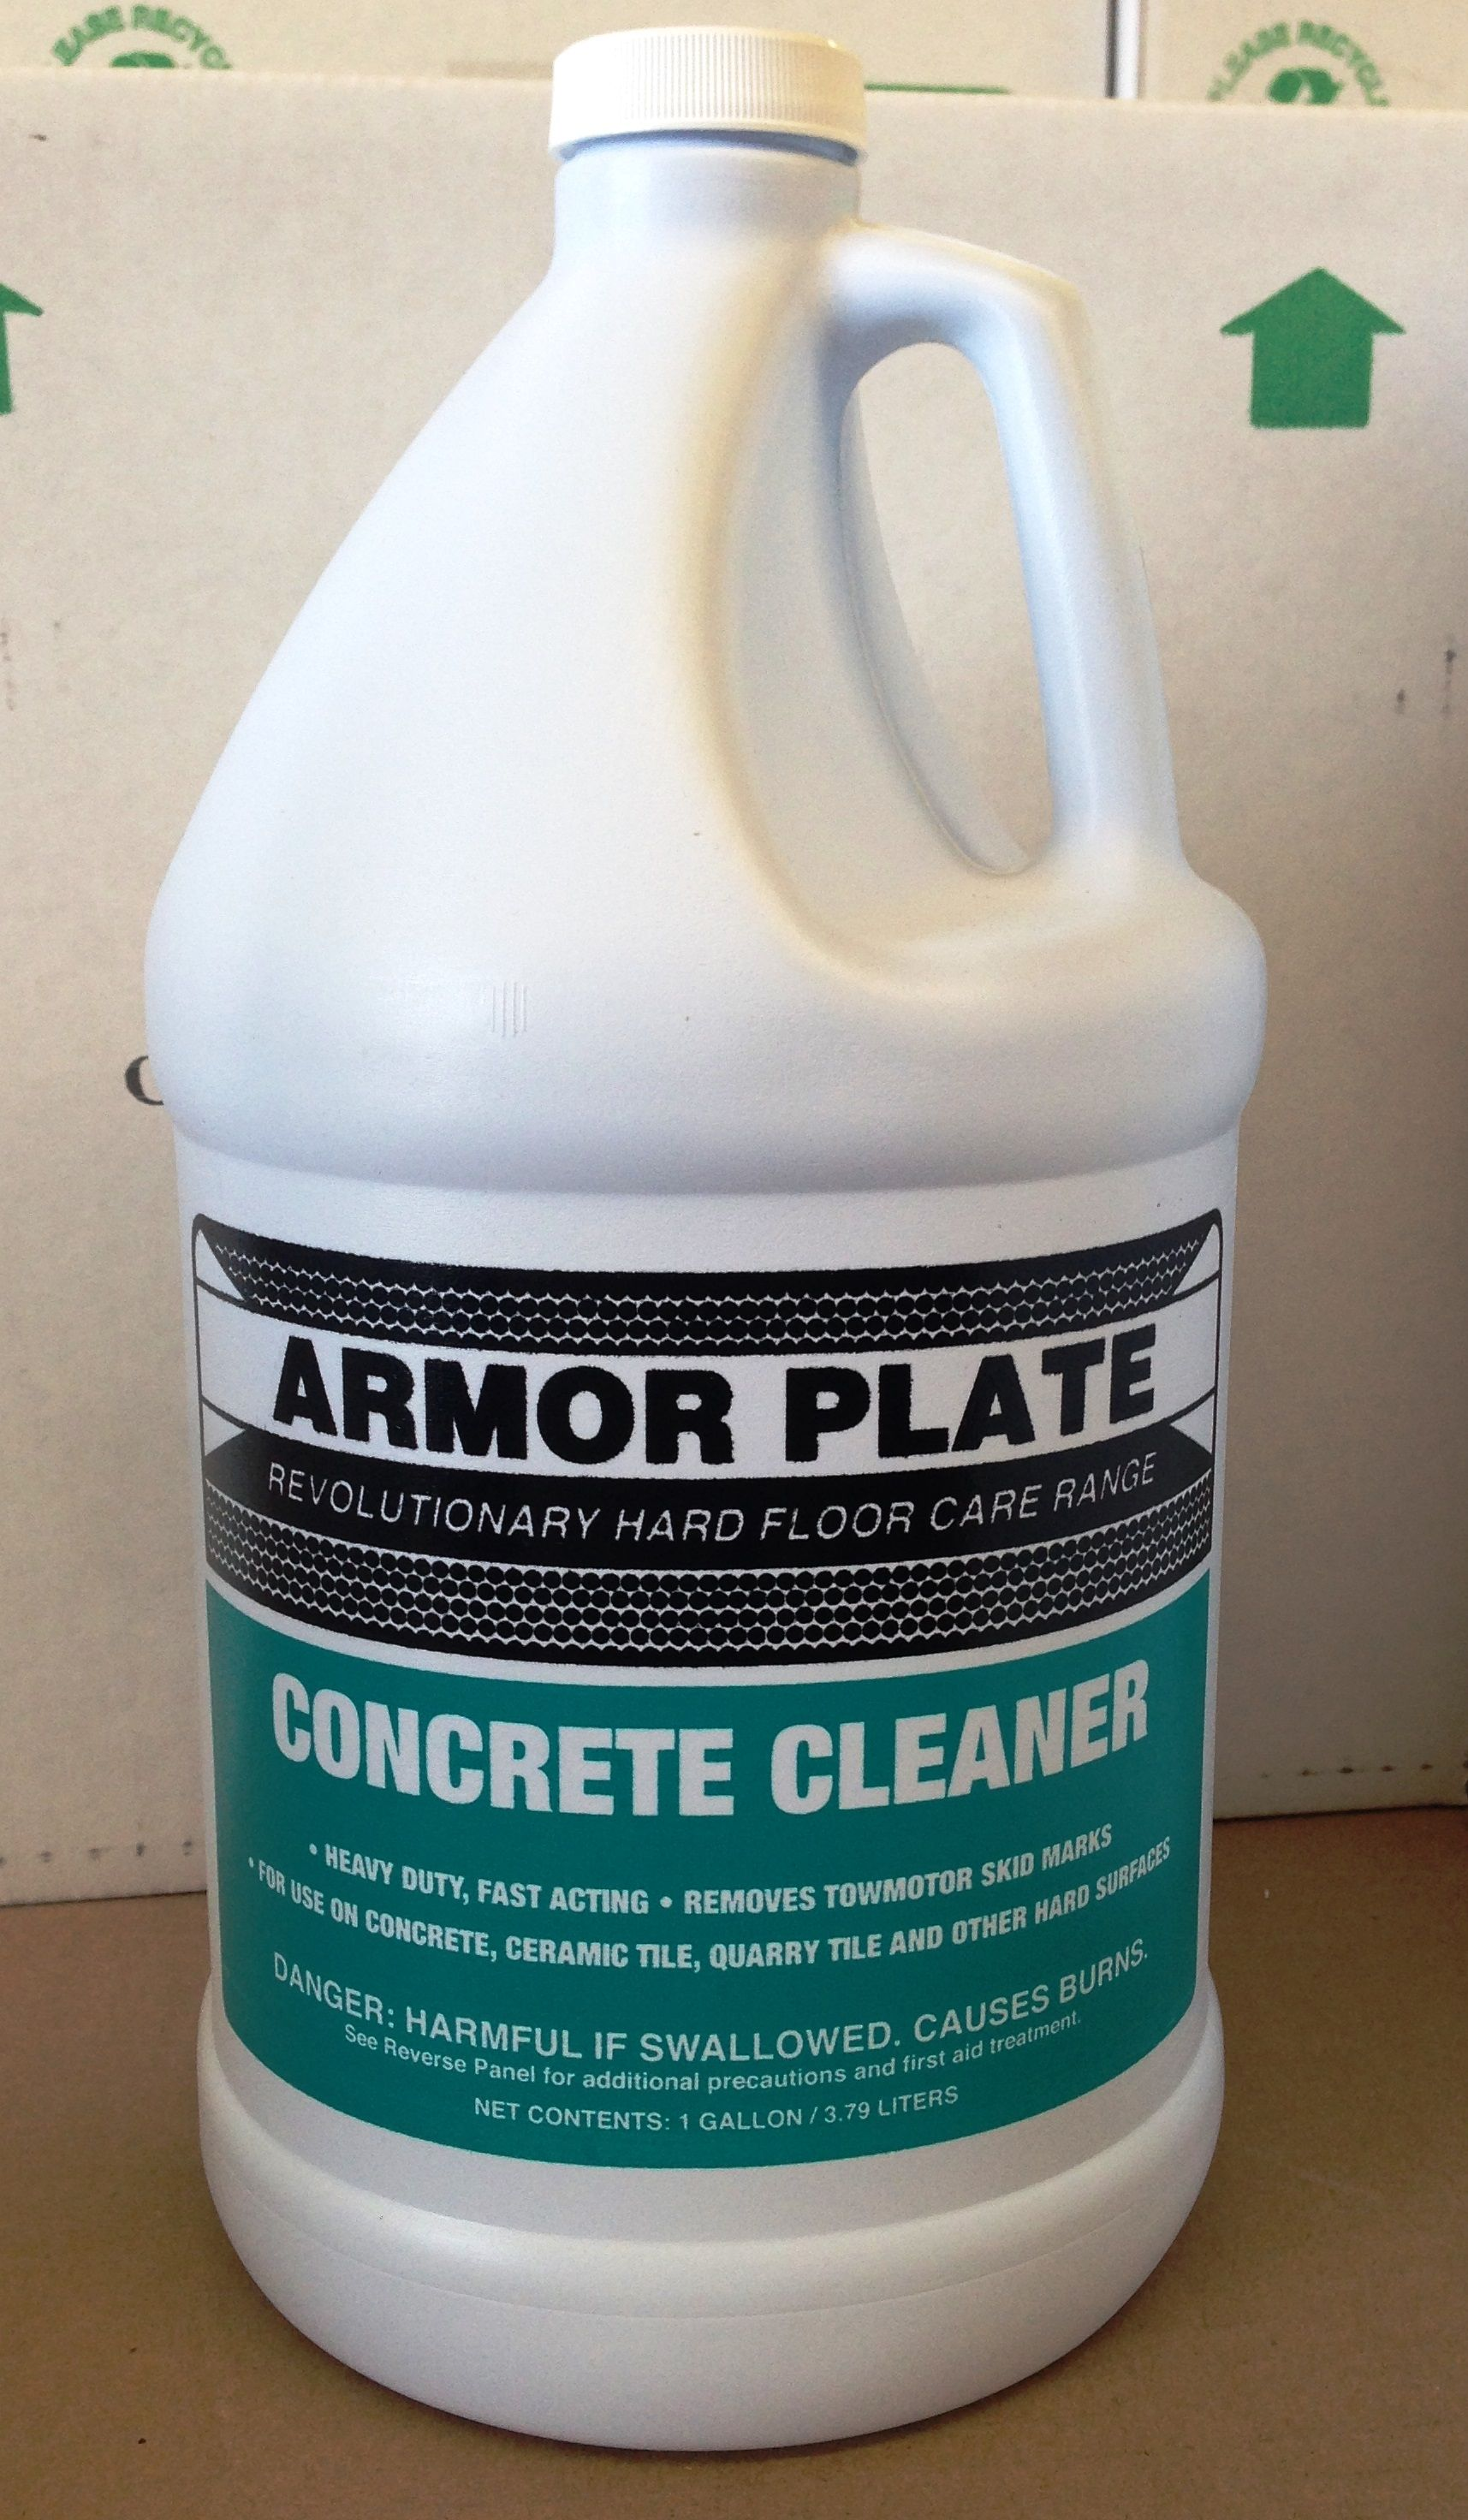 Concrete Cleaning - concrete cleaner